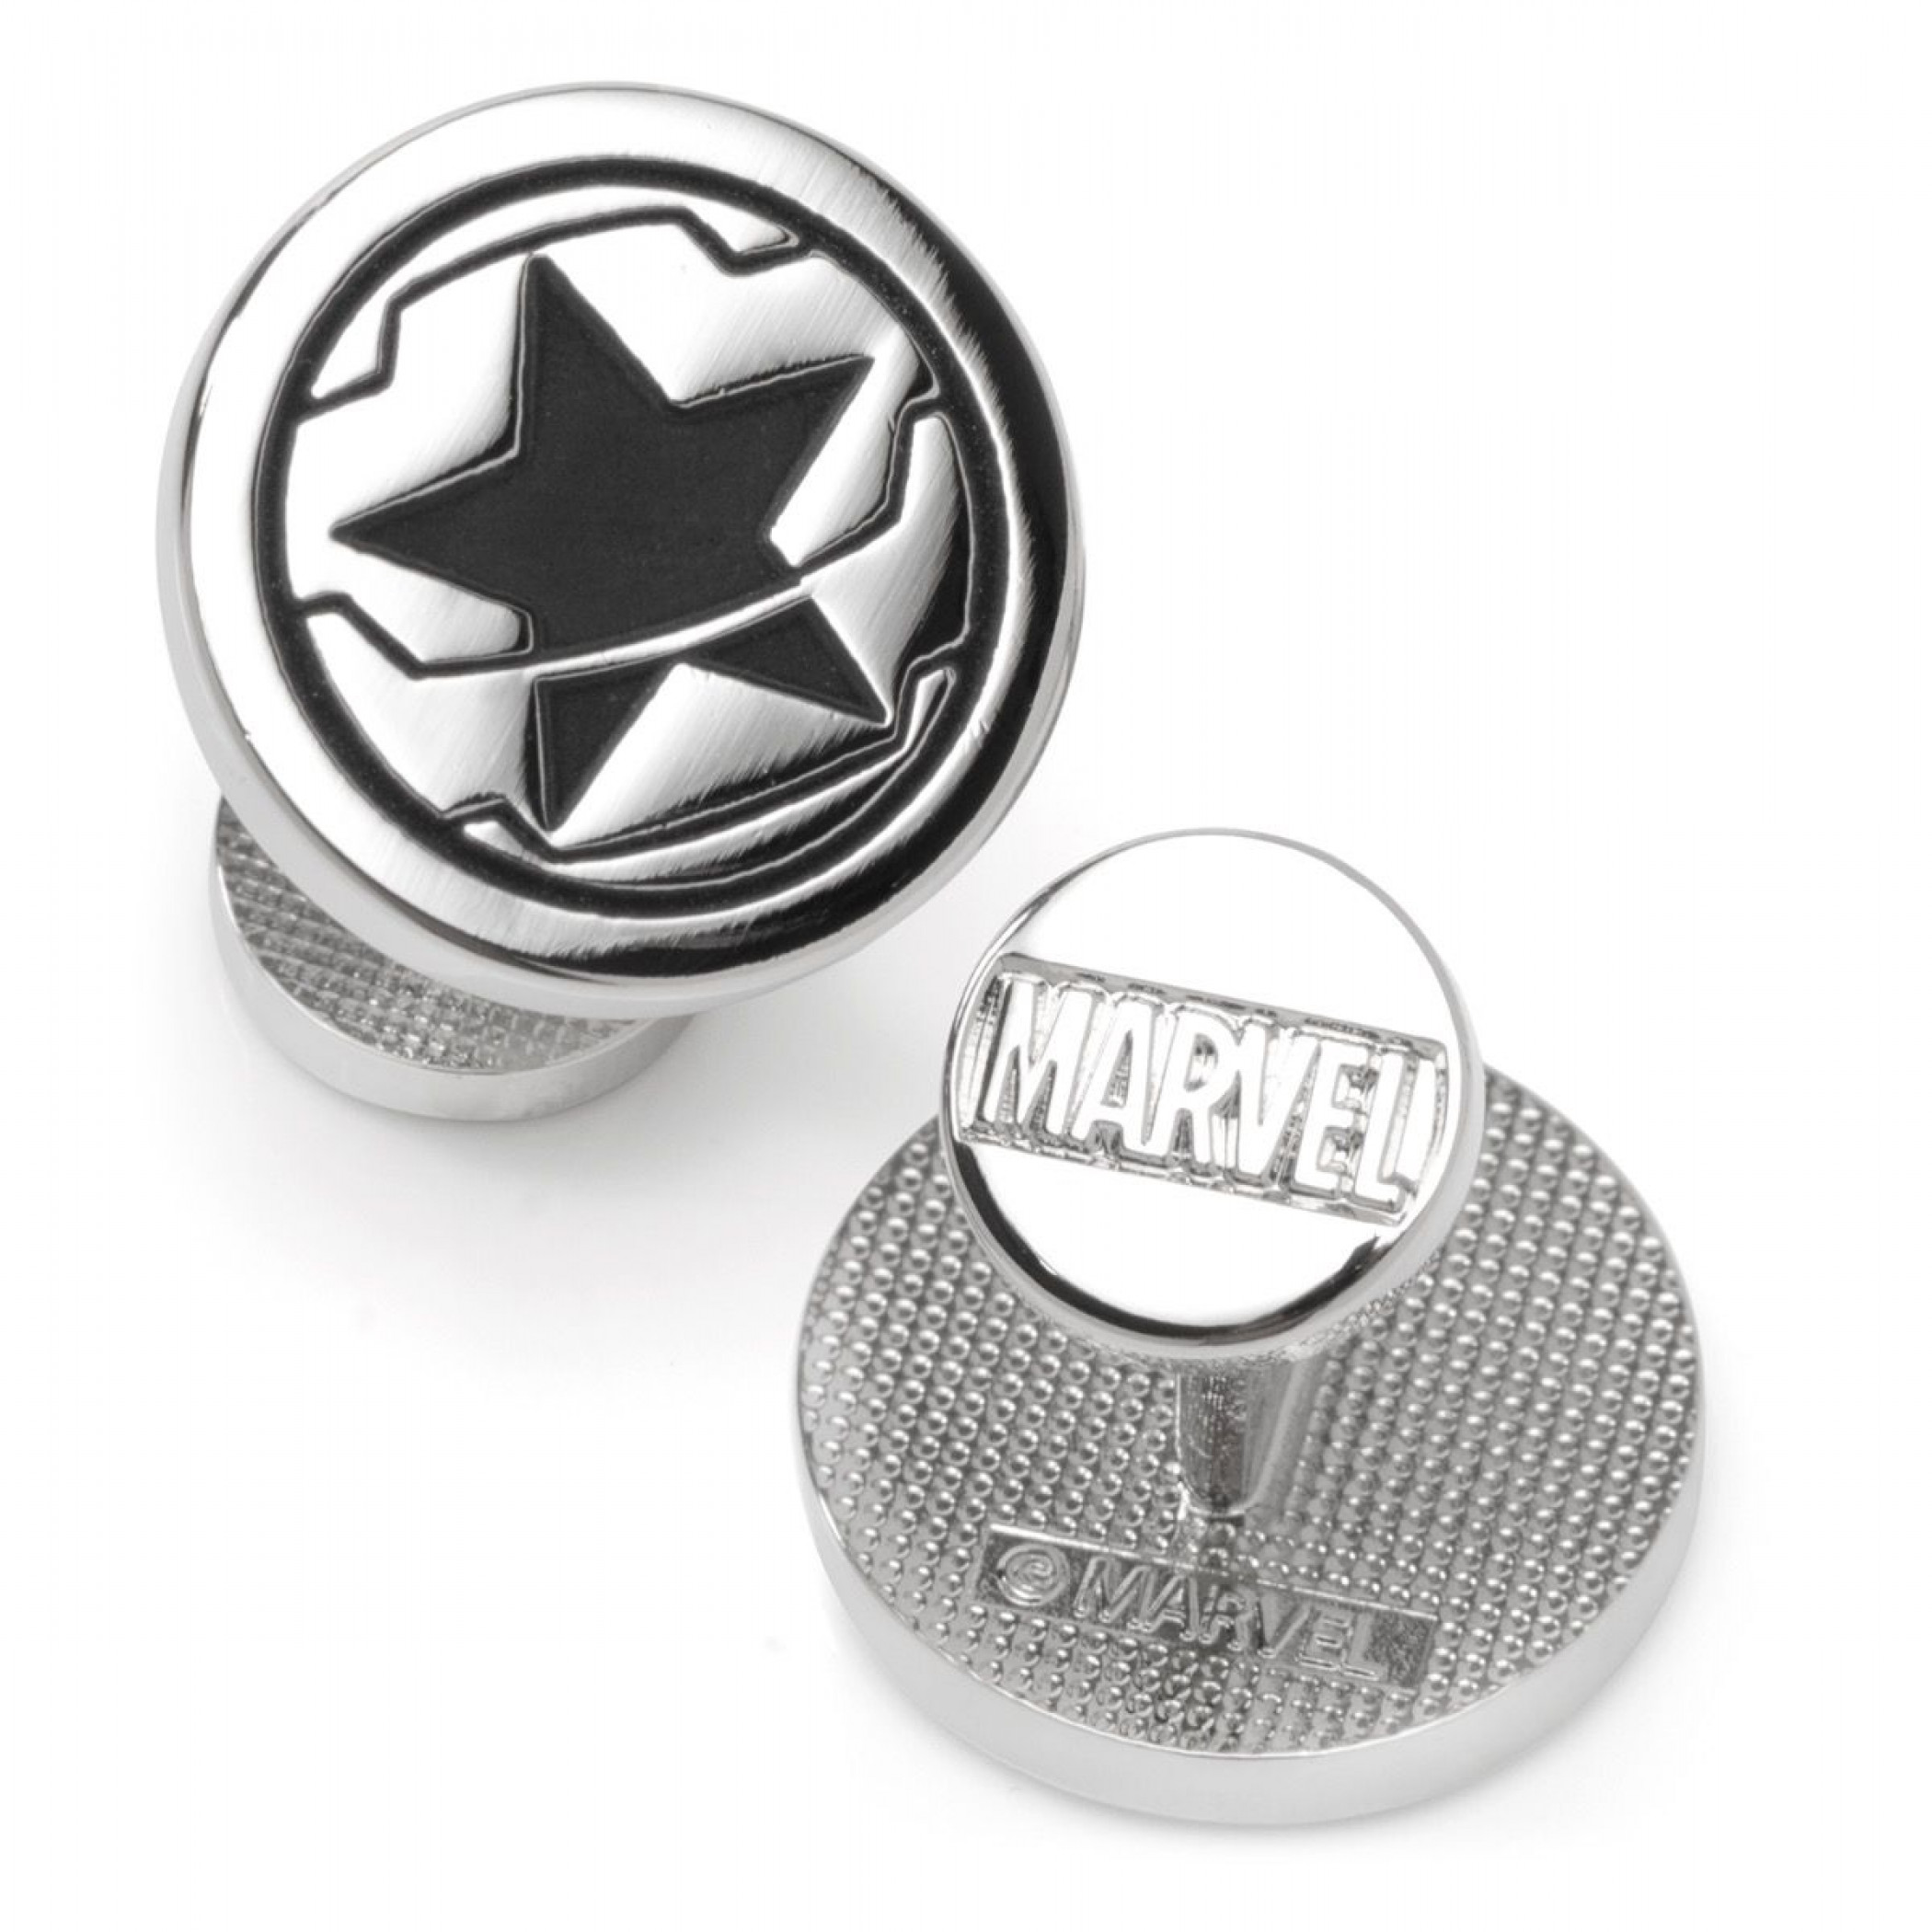 Winter Soldier Logo Cufflinks